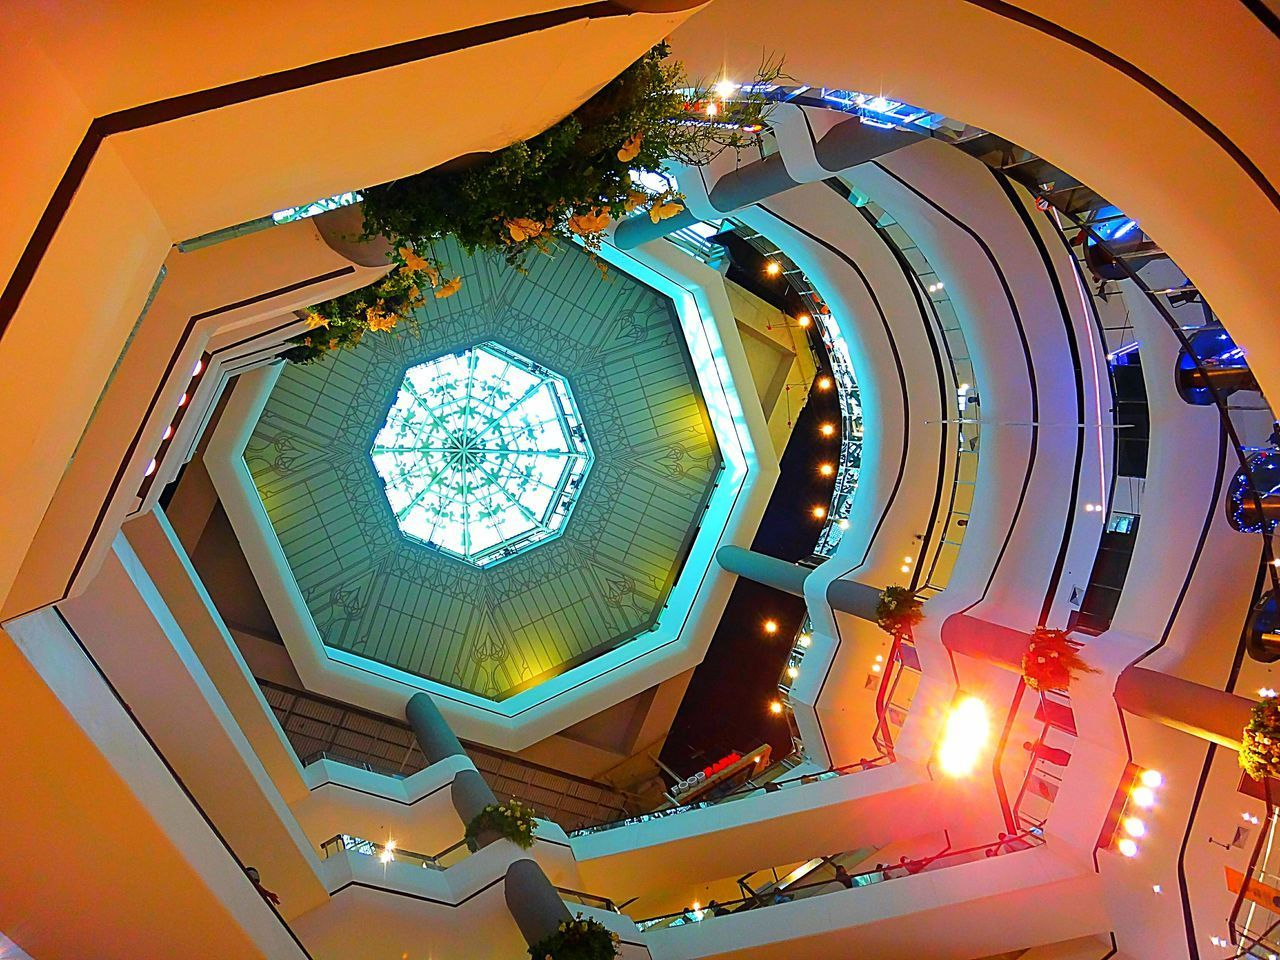 low angle view, architecture, illuminated, indoors, built structure, no people, ceiling, lighting equipment, building, pattern, directly below, shape, glass - material, design, night, hanging, geometric shape, modern, architectural feature, light, ornate, light fixture, luxury, cupola, architecture and art